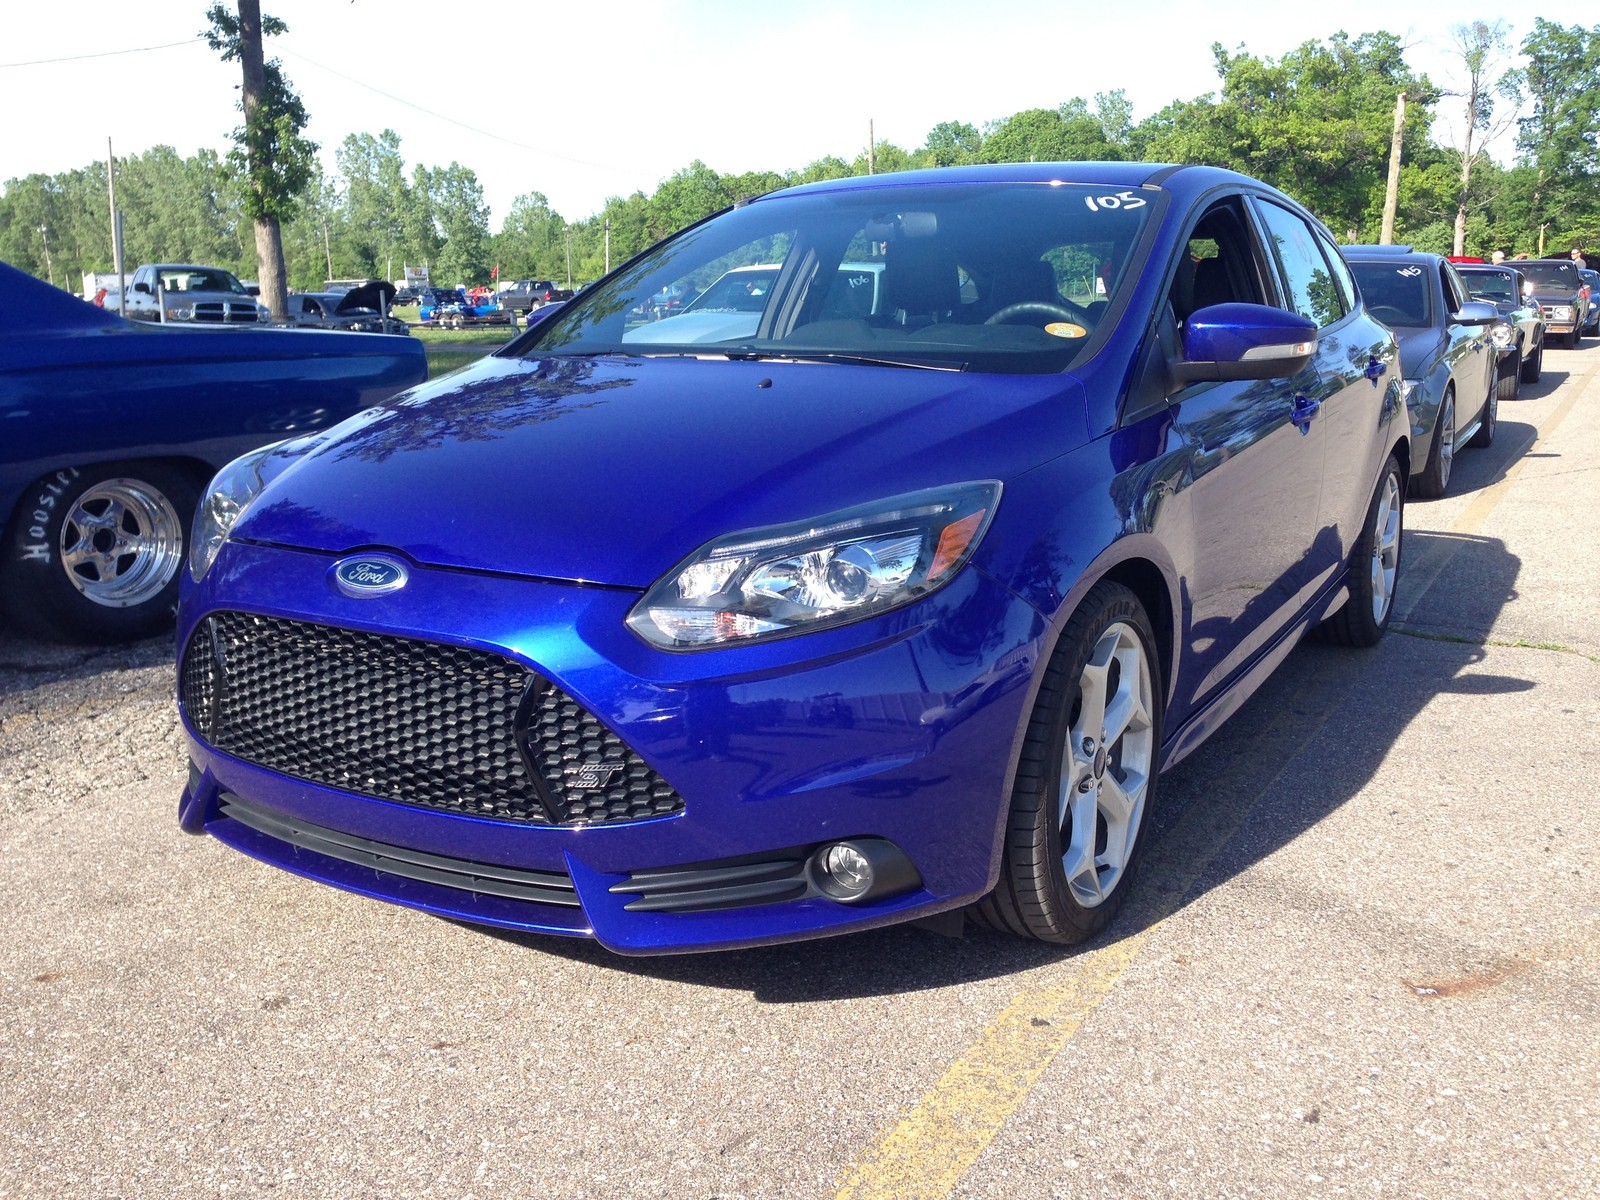 Stock 2014 Ford Focus ST 1 4 mile trap speeds 0 60 DragTimes